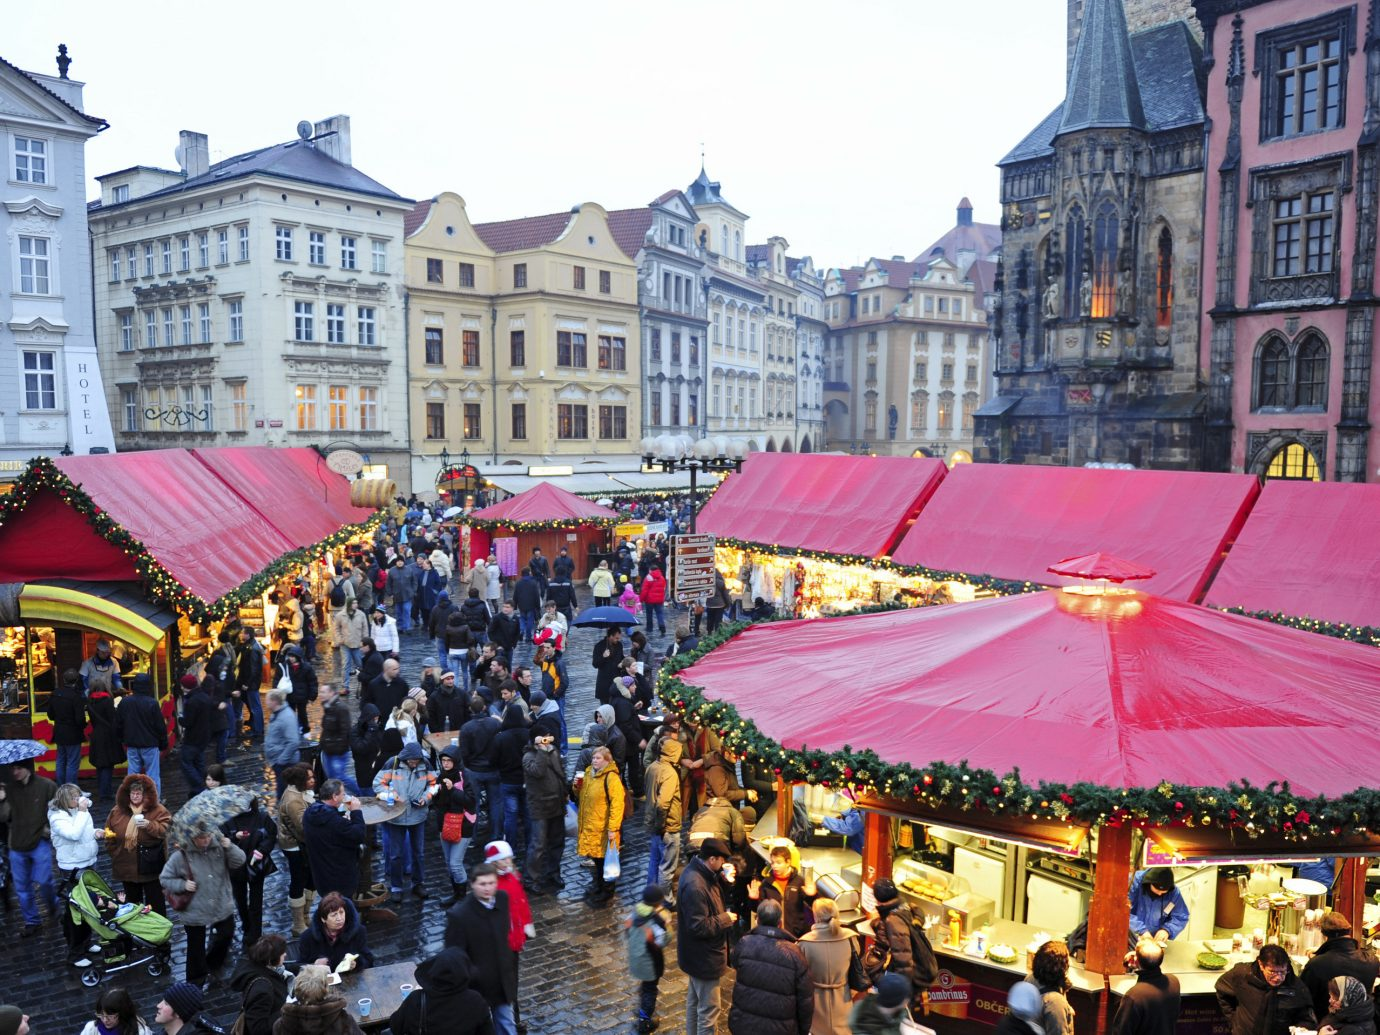 Trip Ideas Winter building outdoor people crowd person Town group market festival carnival City crowded line